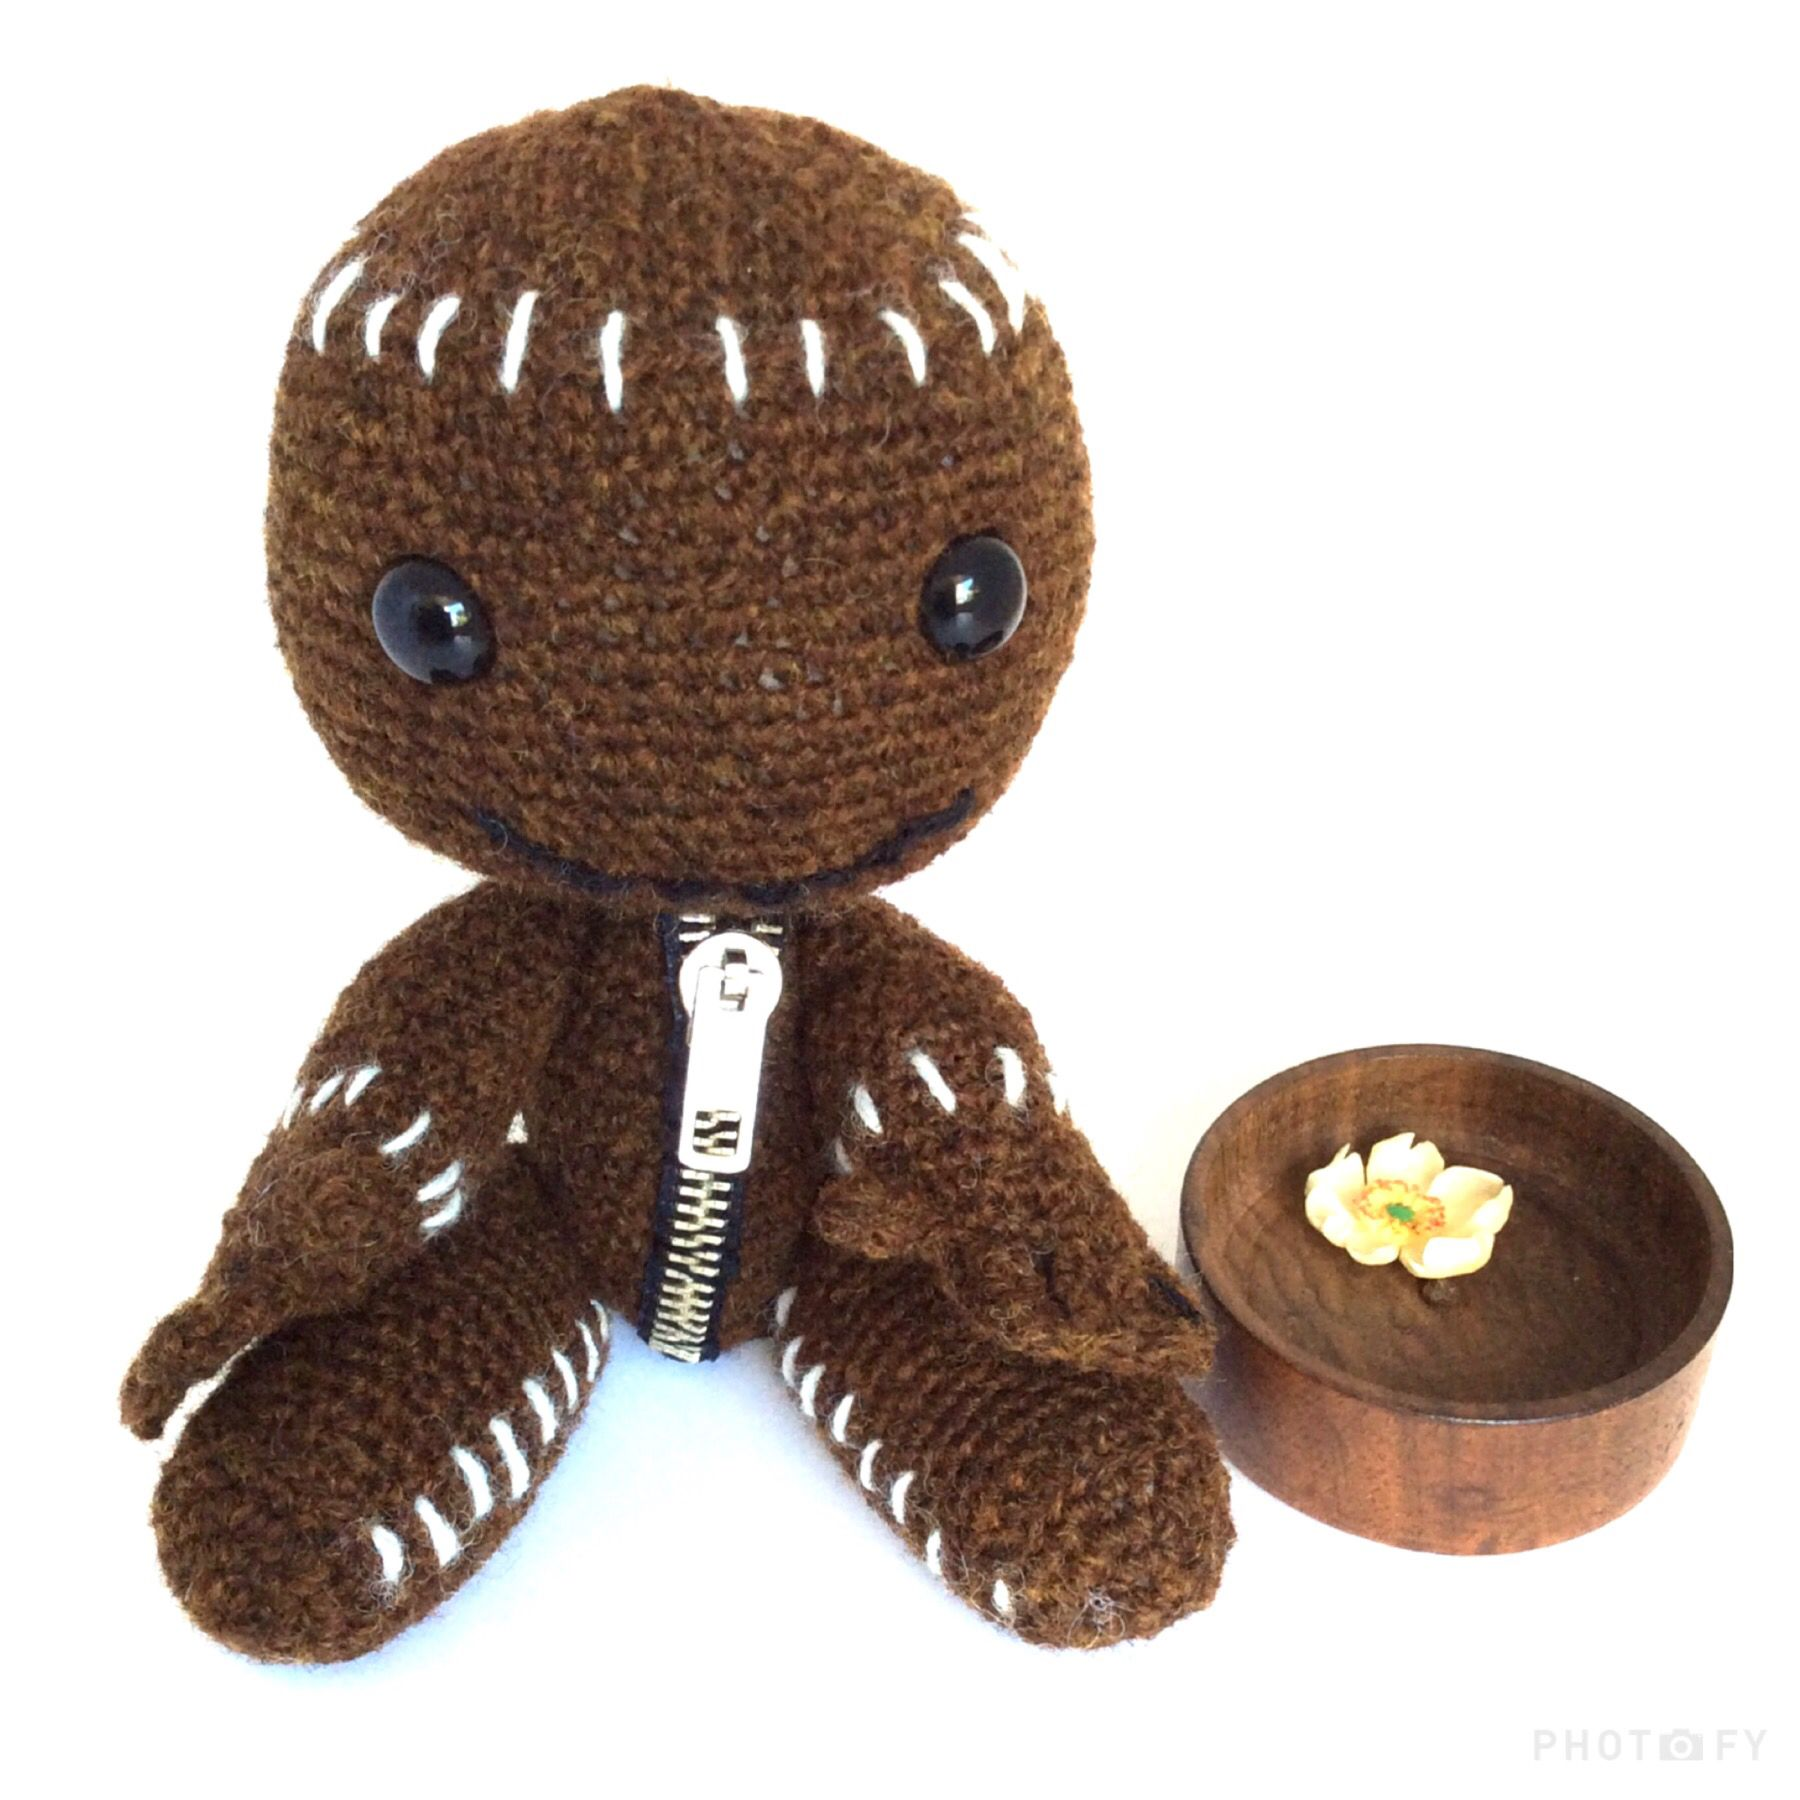 Sackboy sewing pattern images craft decoration ideas my lovely sackboy free pattern by anna carax crochet by me my lovely sackboy free pattern dt1010fo